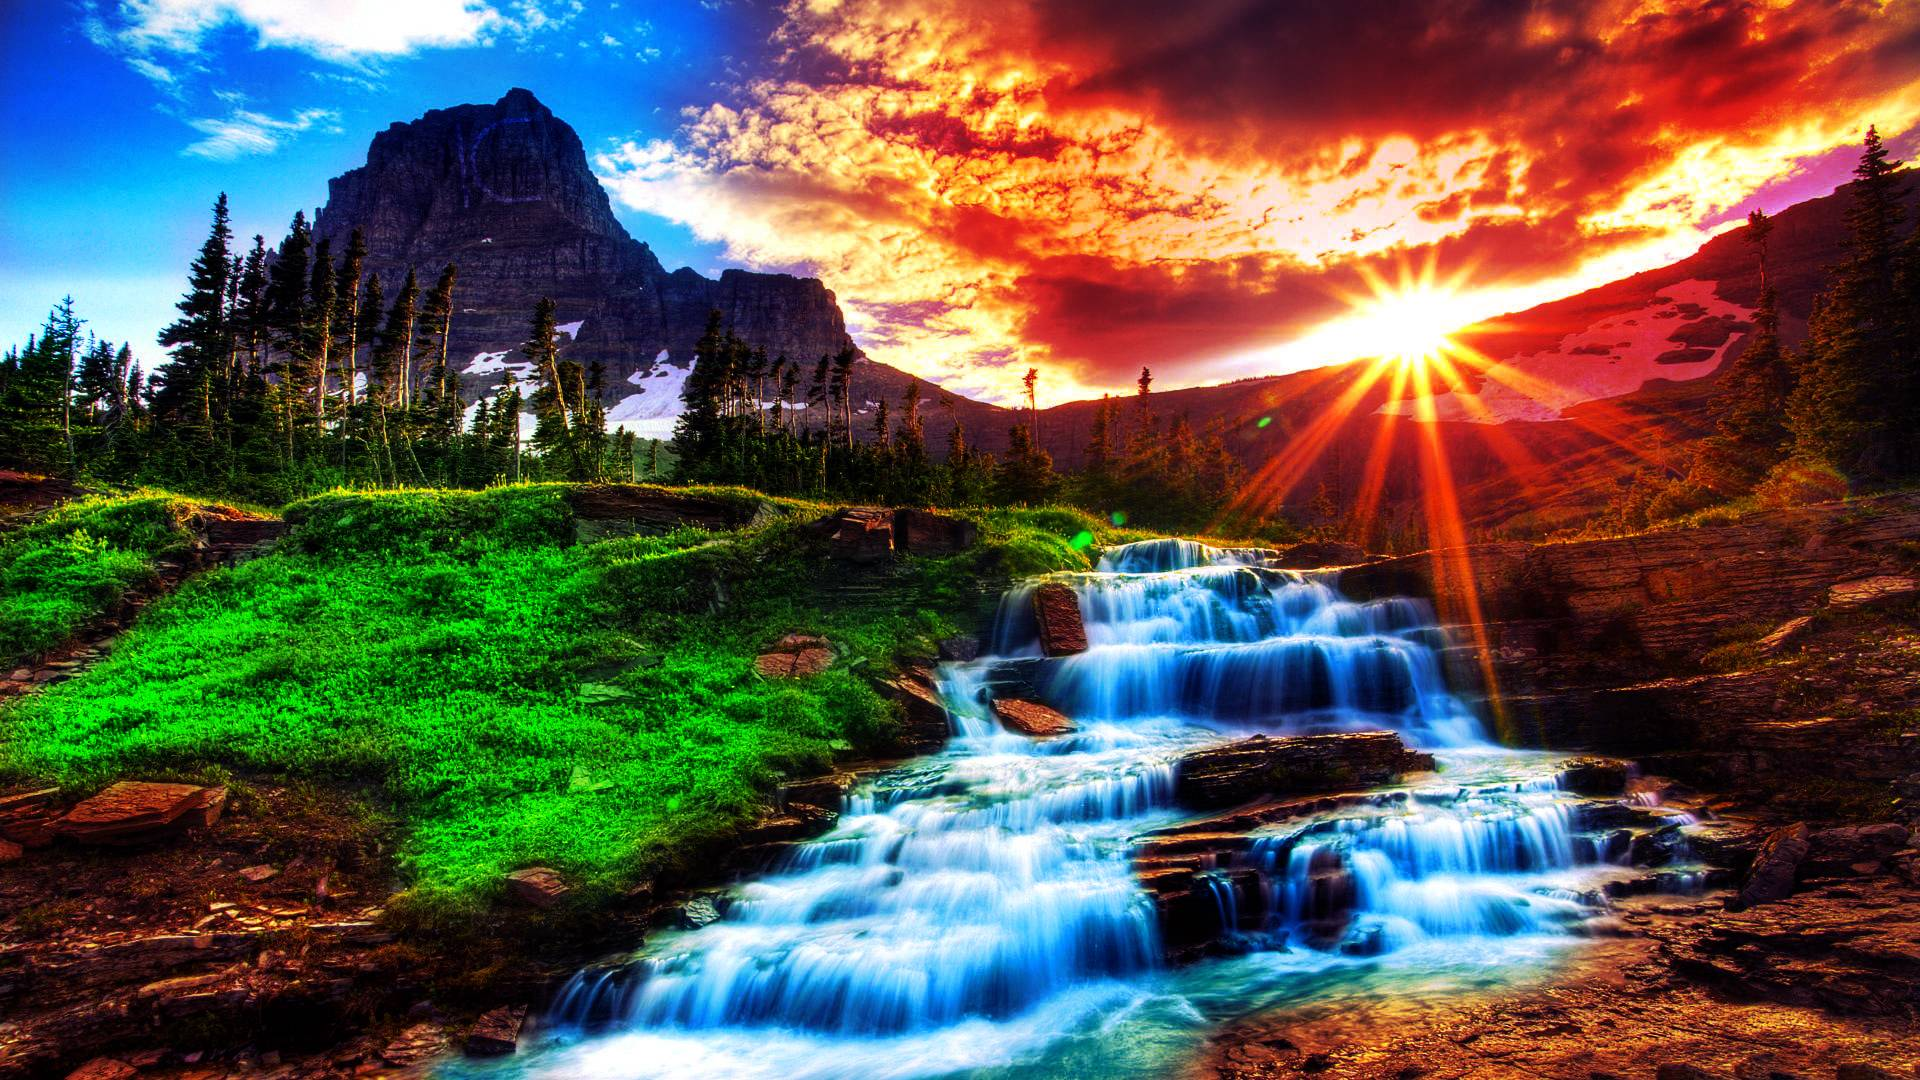 Hd wallpaper download for android phones - 1569228 Jpg